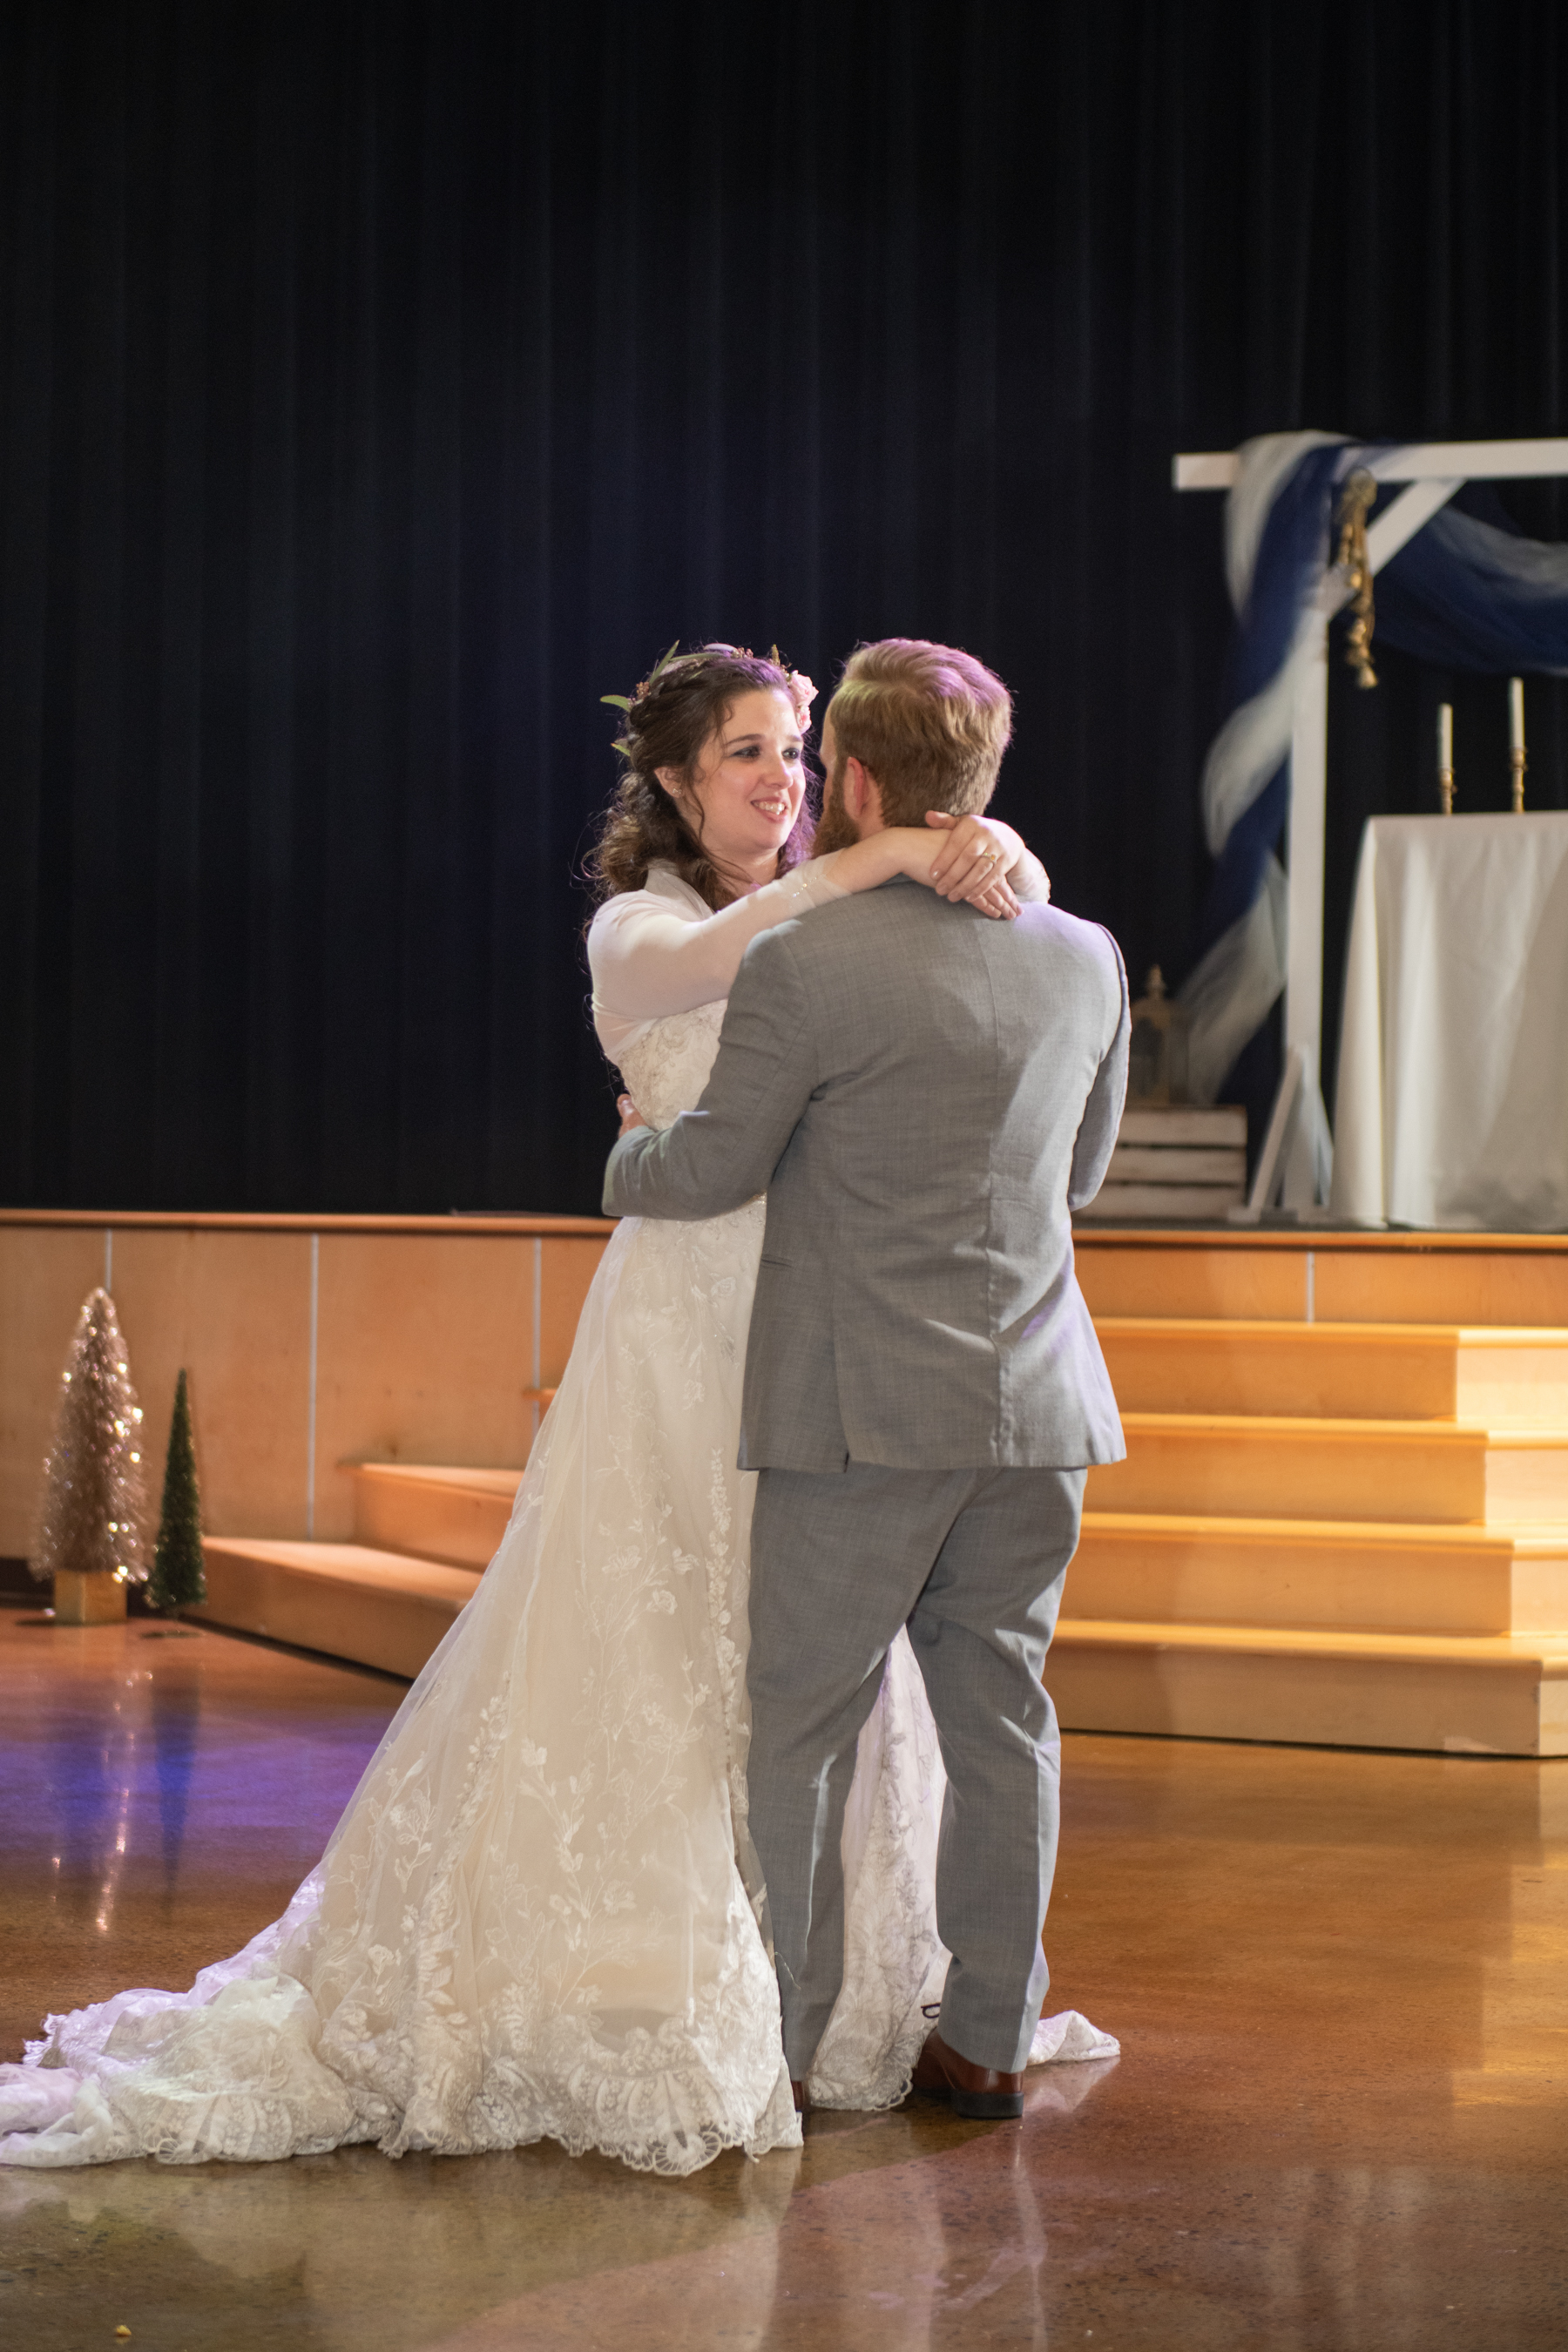 Calvary-Chapel-Chattanooga-Wedding-40.jpg